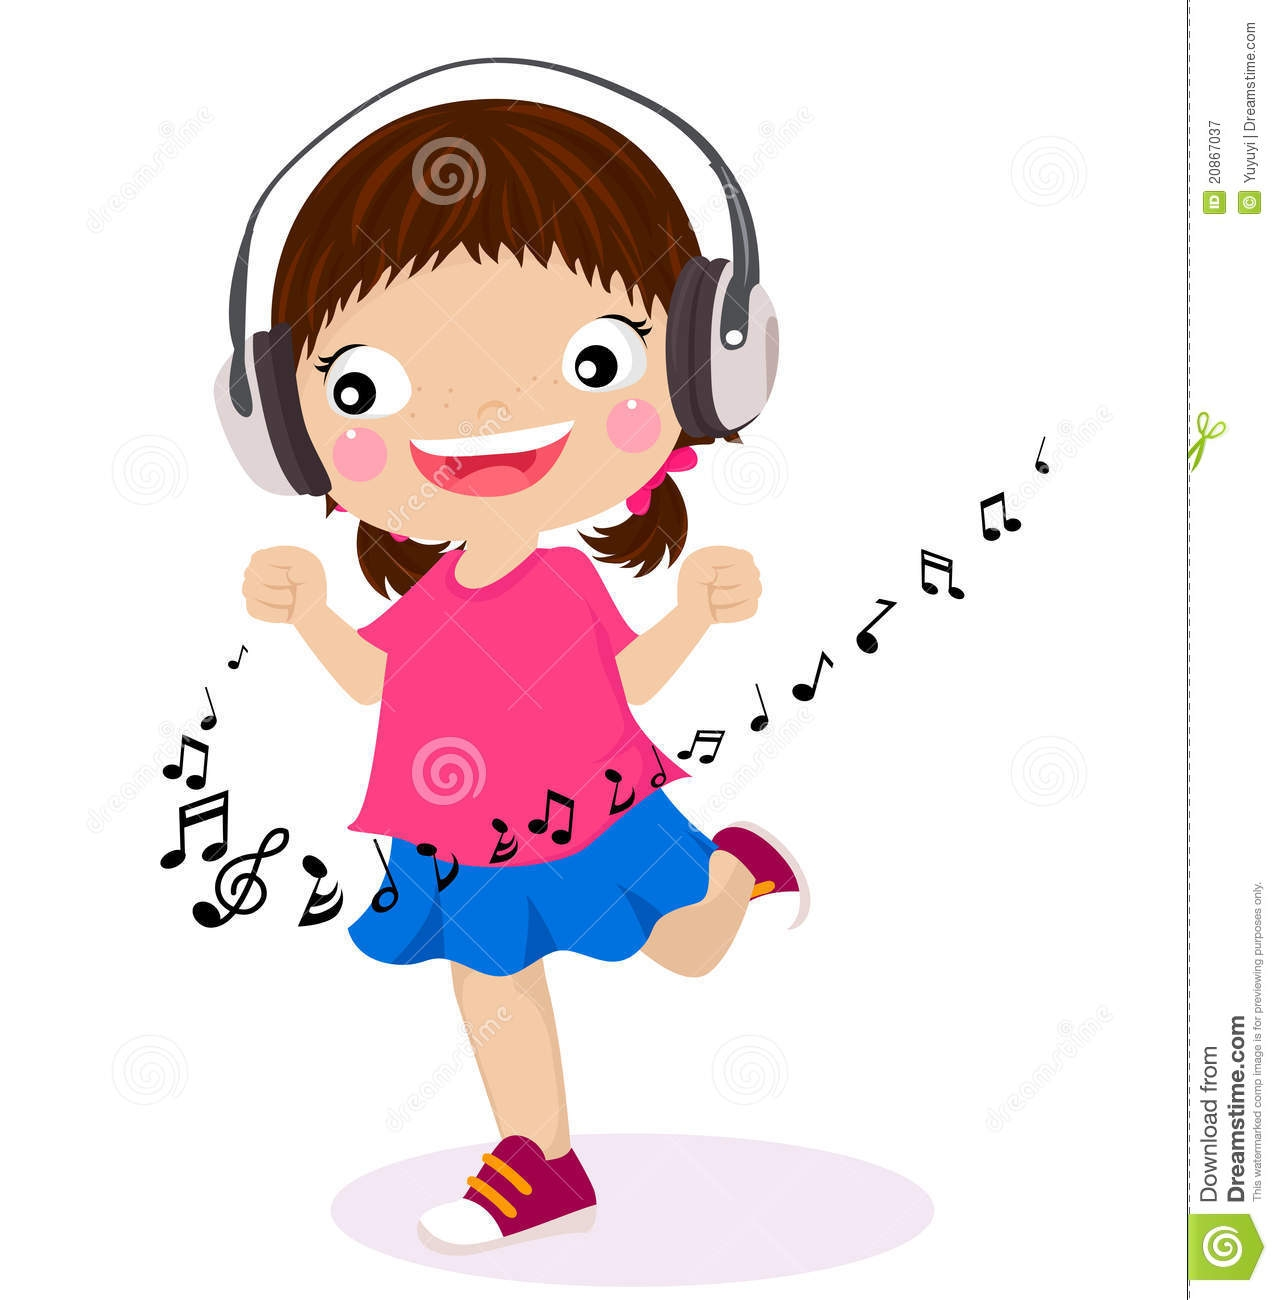 picture transparent Listen free download best. Kid listening to music clipart.